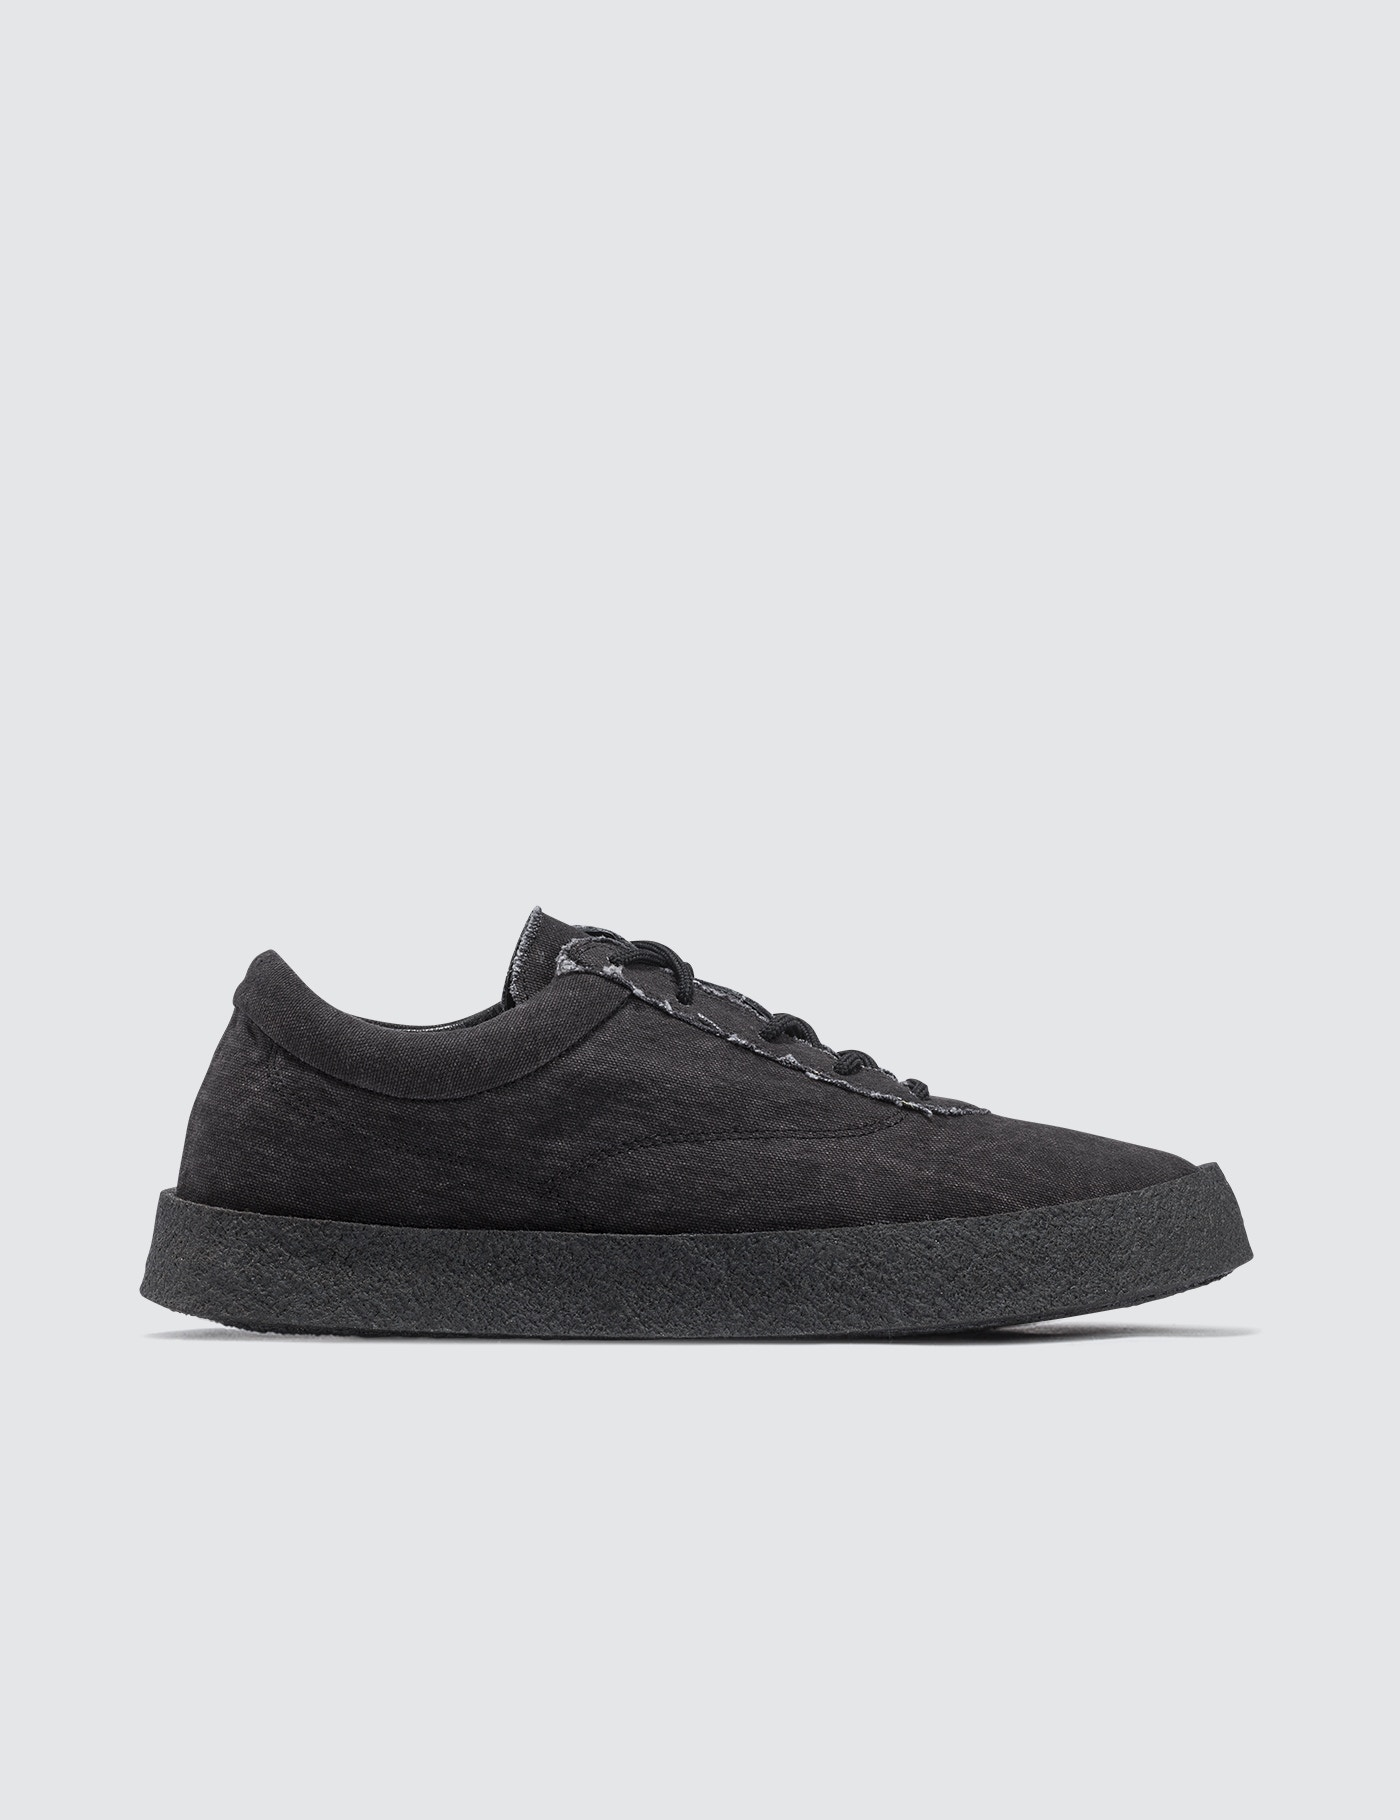 9561338f48a67 Buy Original Yeezy Season 6 Crepe Sneaker In Washed Canvas at ...